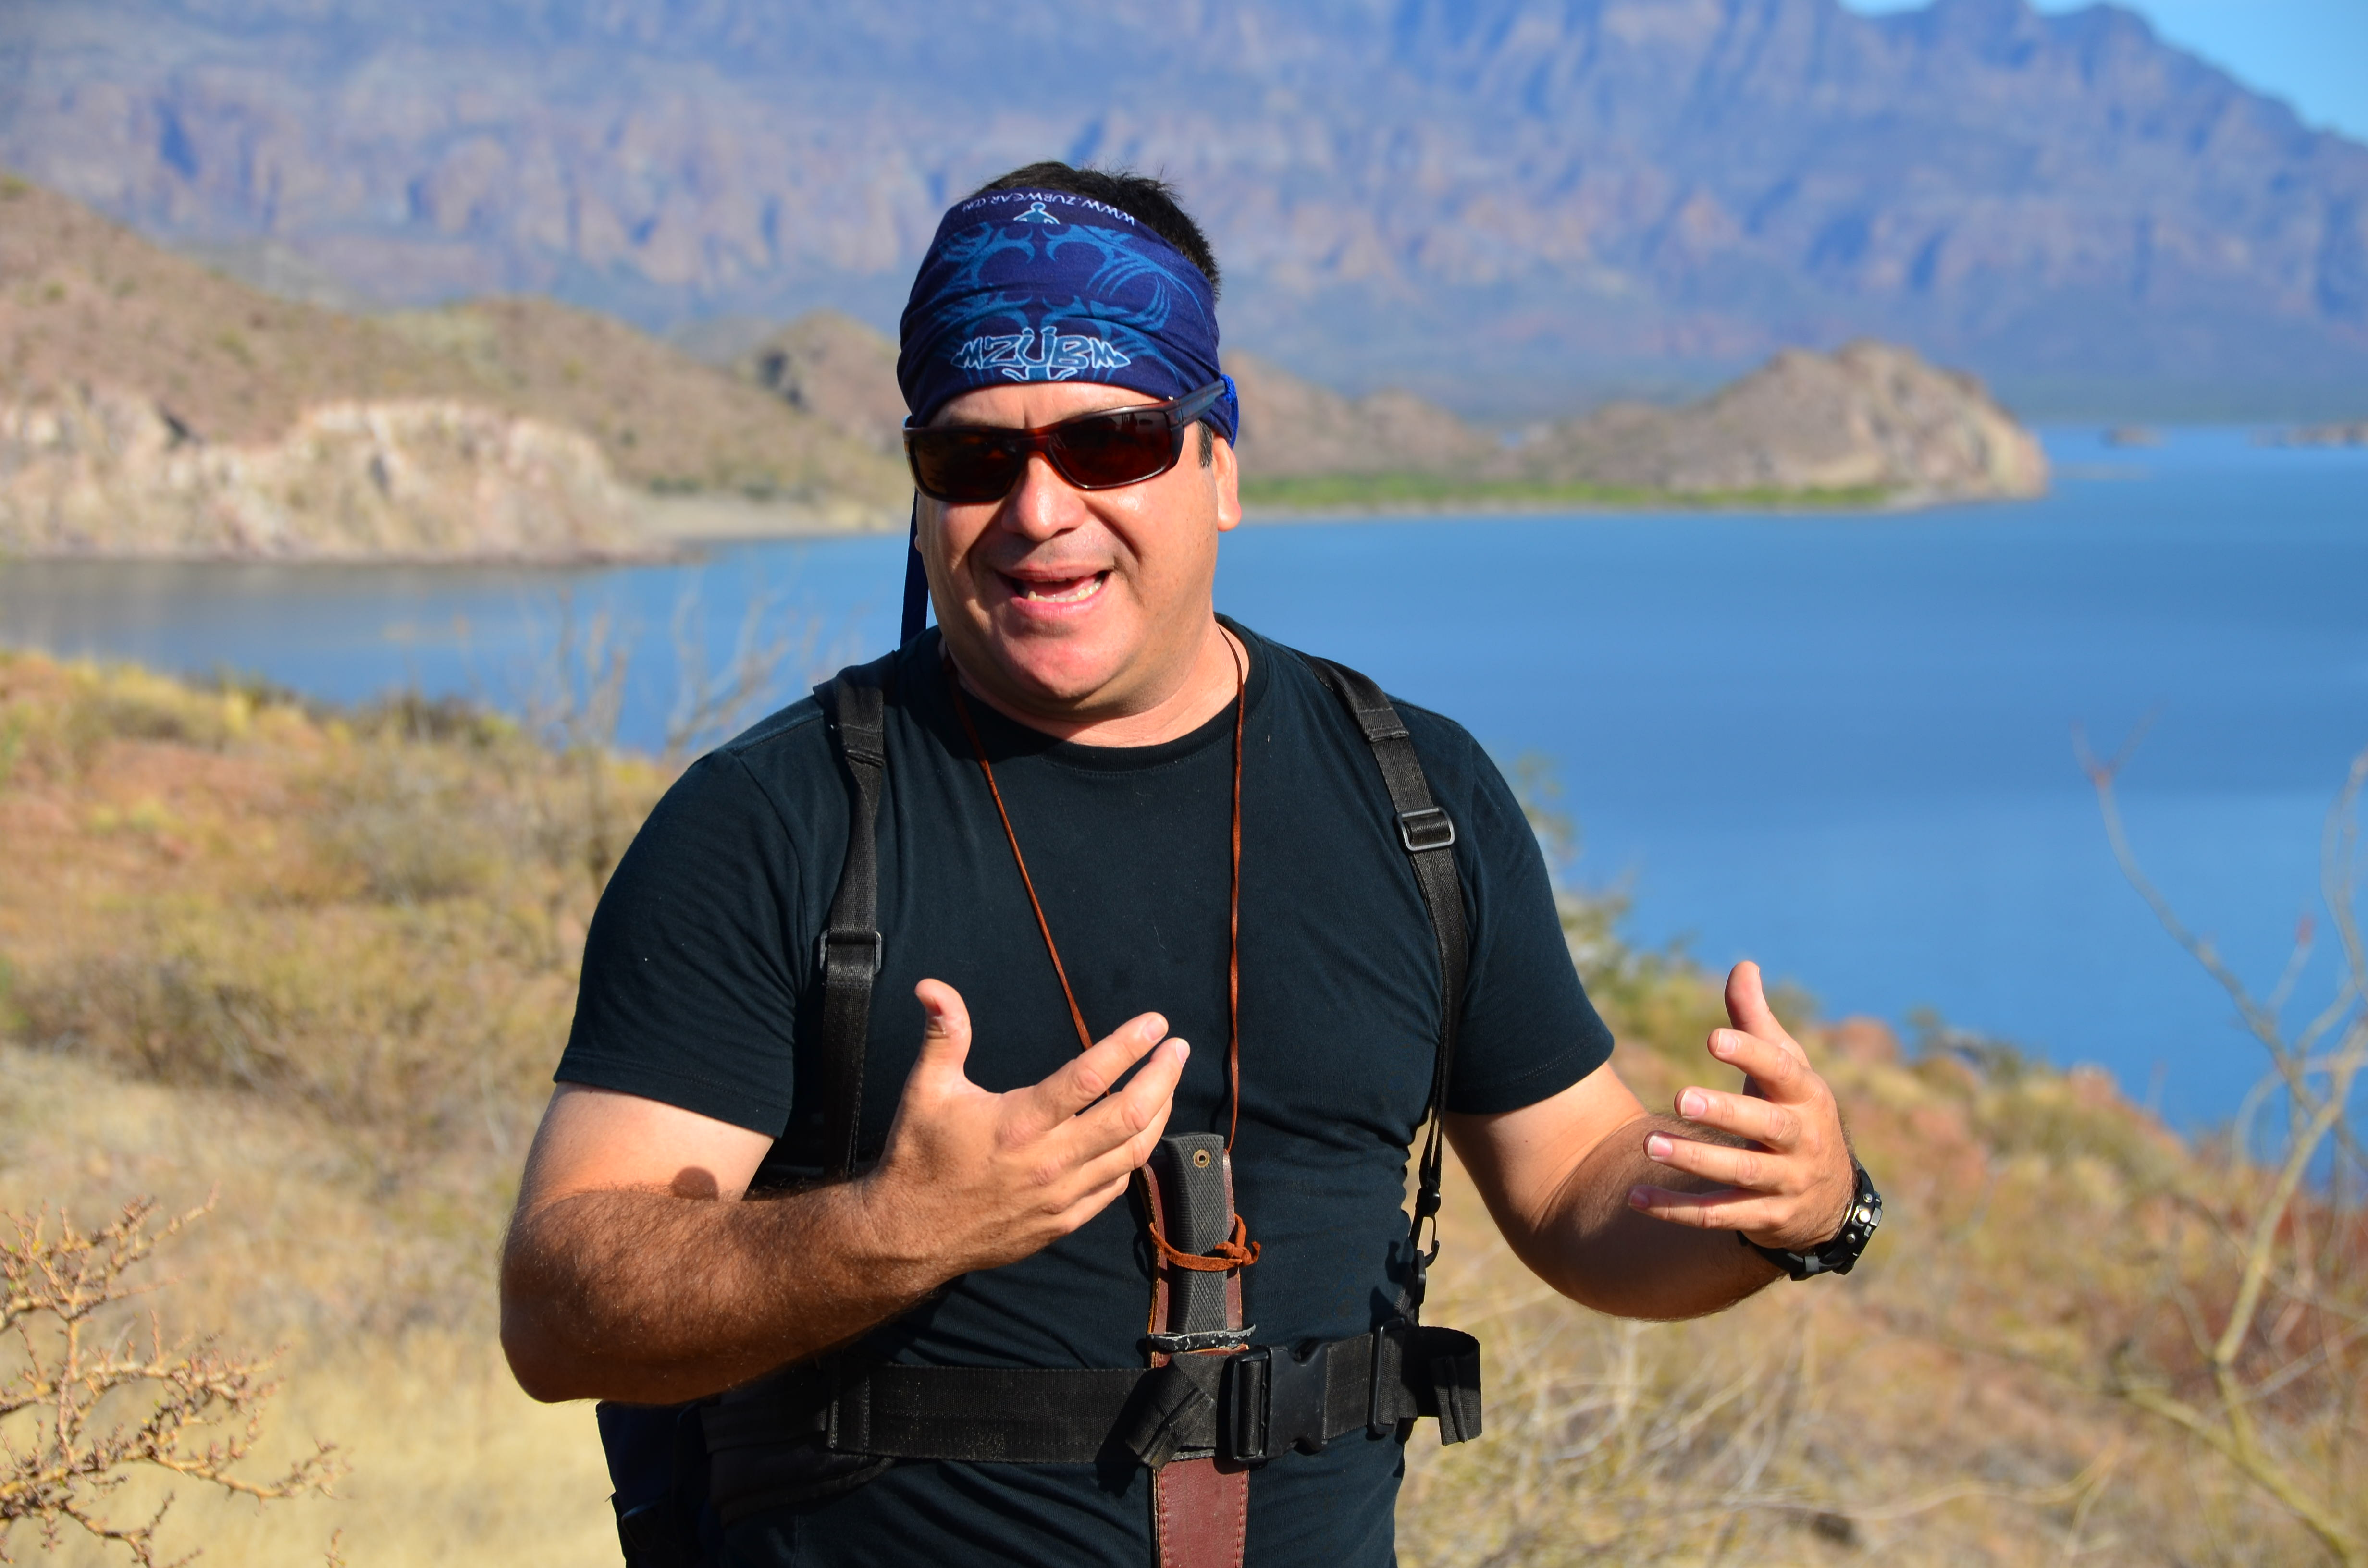 Carlos Velasco, the hotel's tour director and a native of Loreto, provides narration on Baja's geologic, biologic and human history during daily hikes. He designed and helped build the well marked trails about four years ago when the hotel opened.